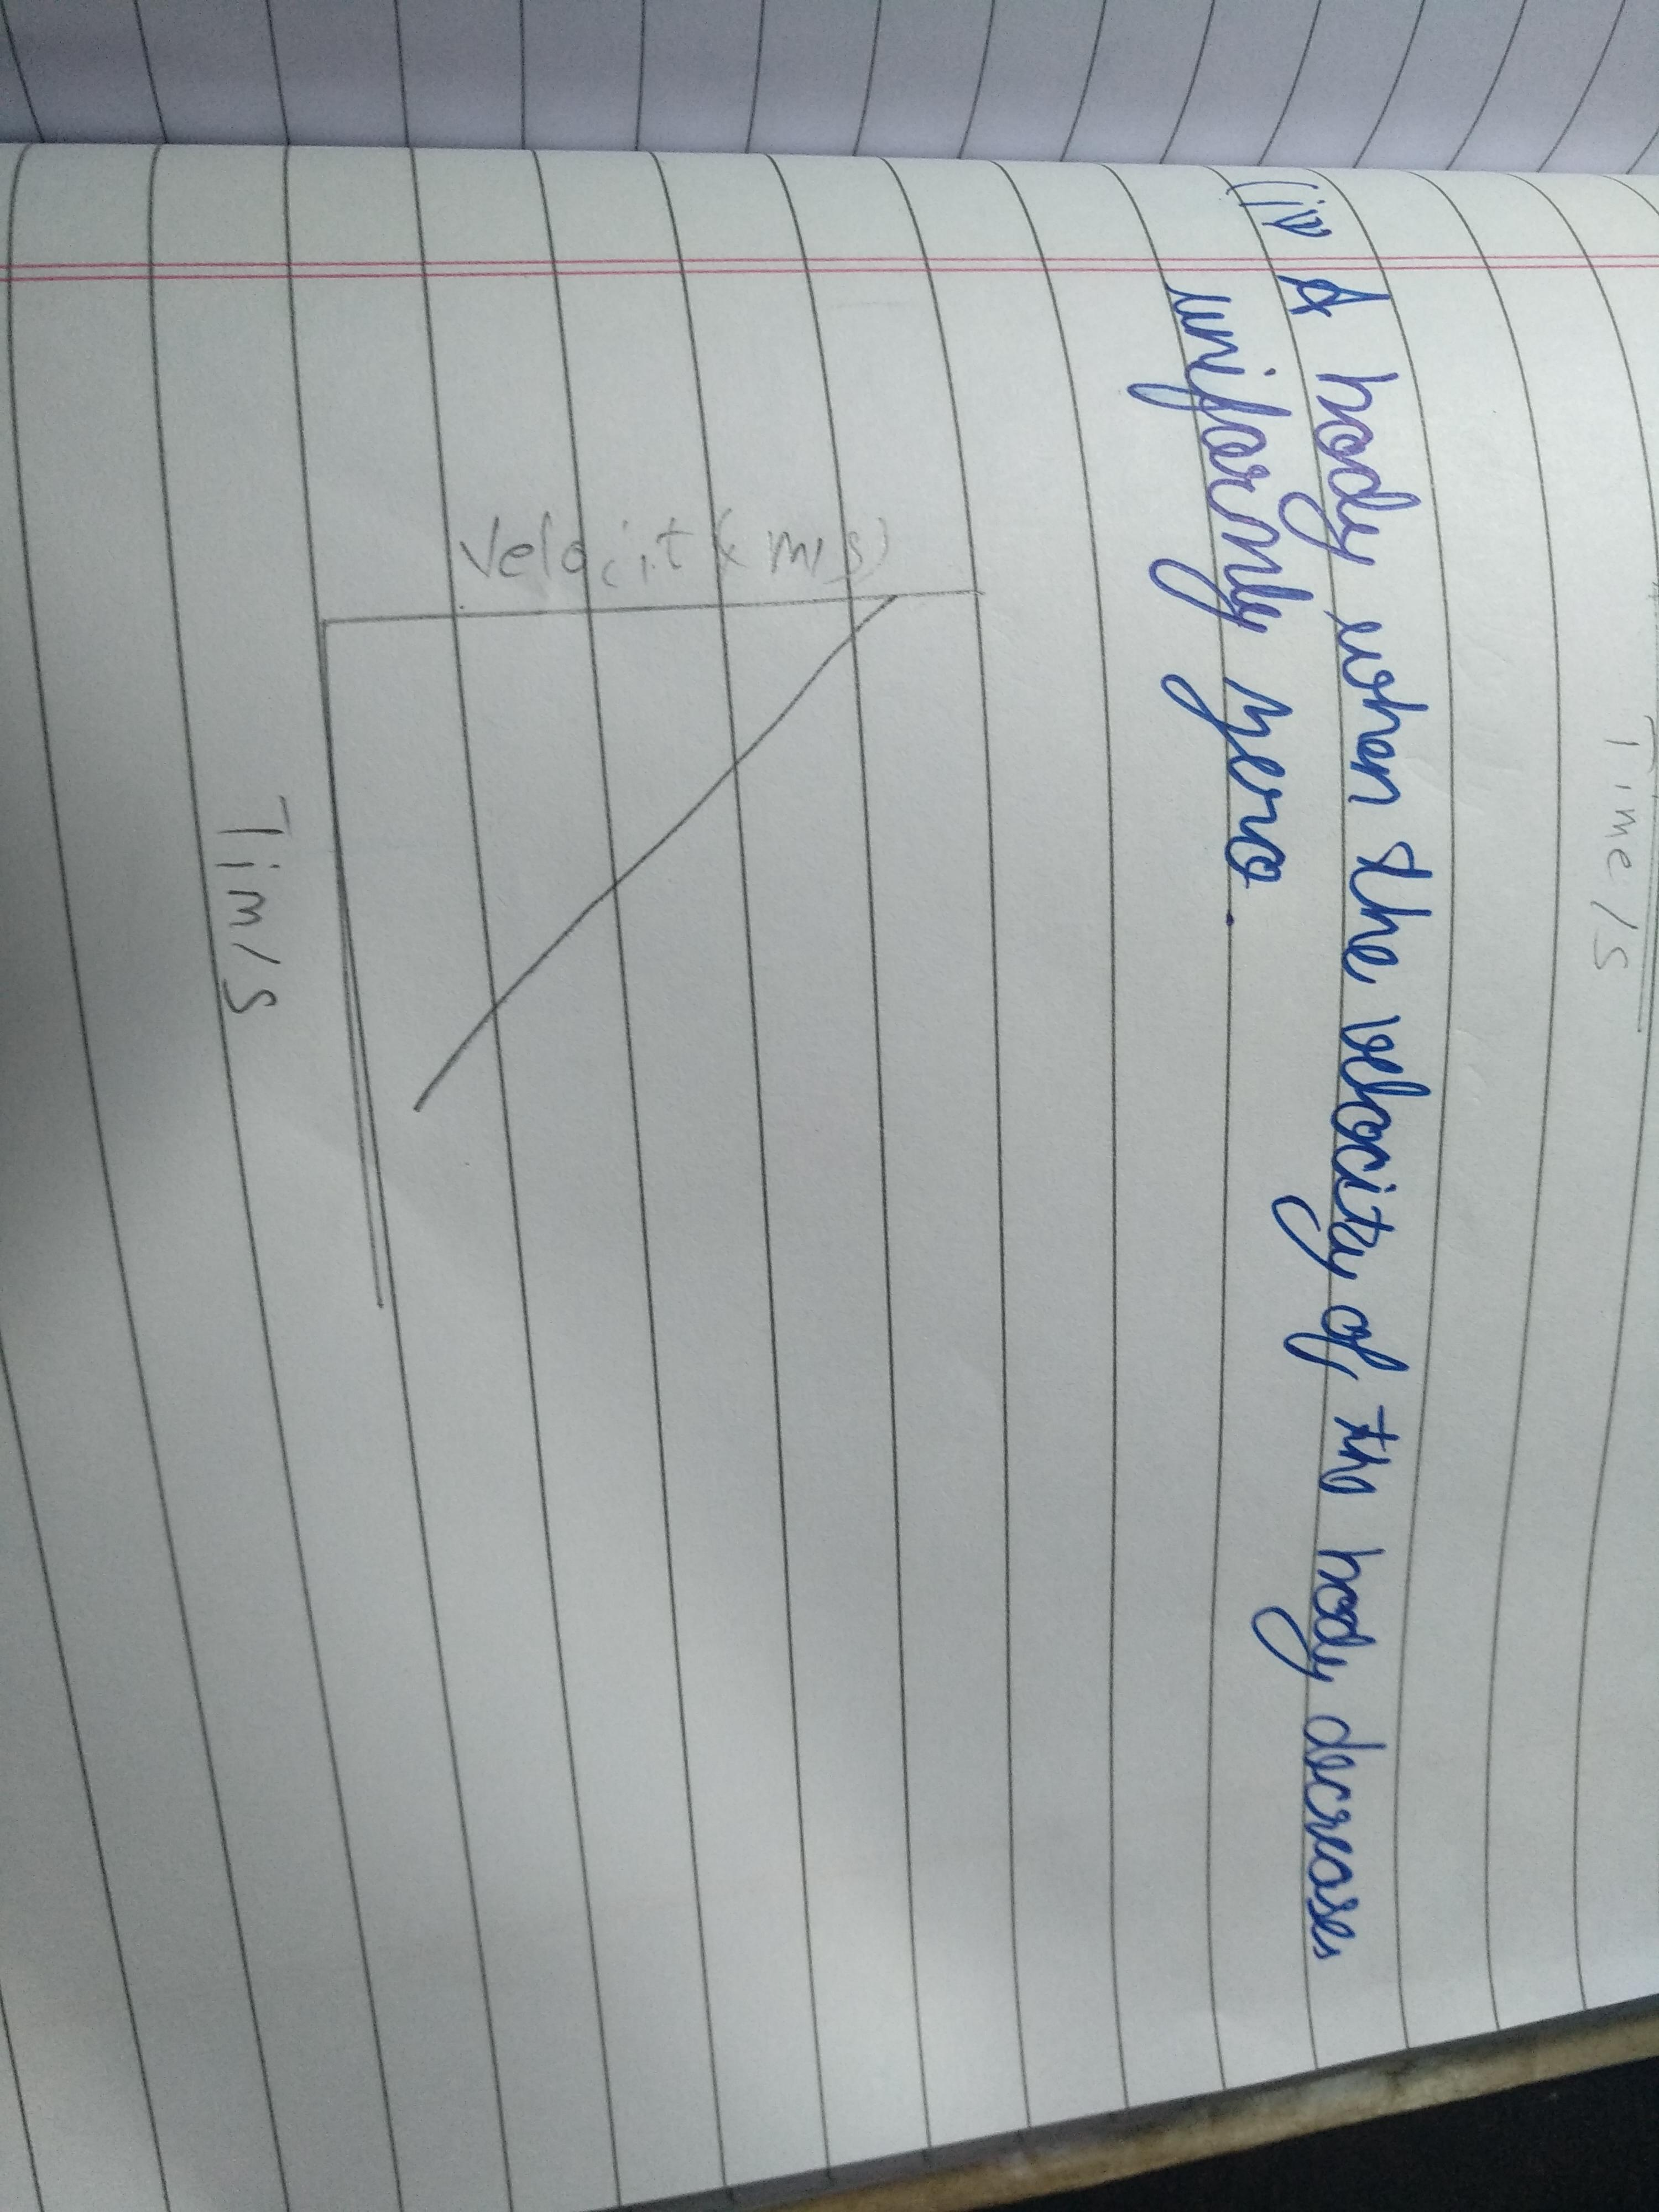 Draw Velocity Time Graph For The Following A When Body Is